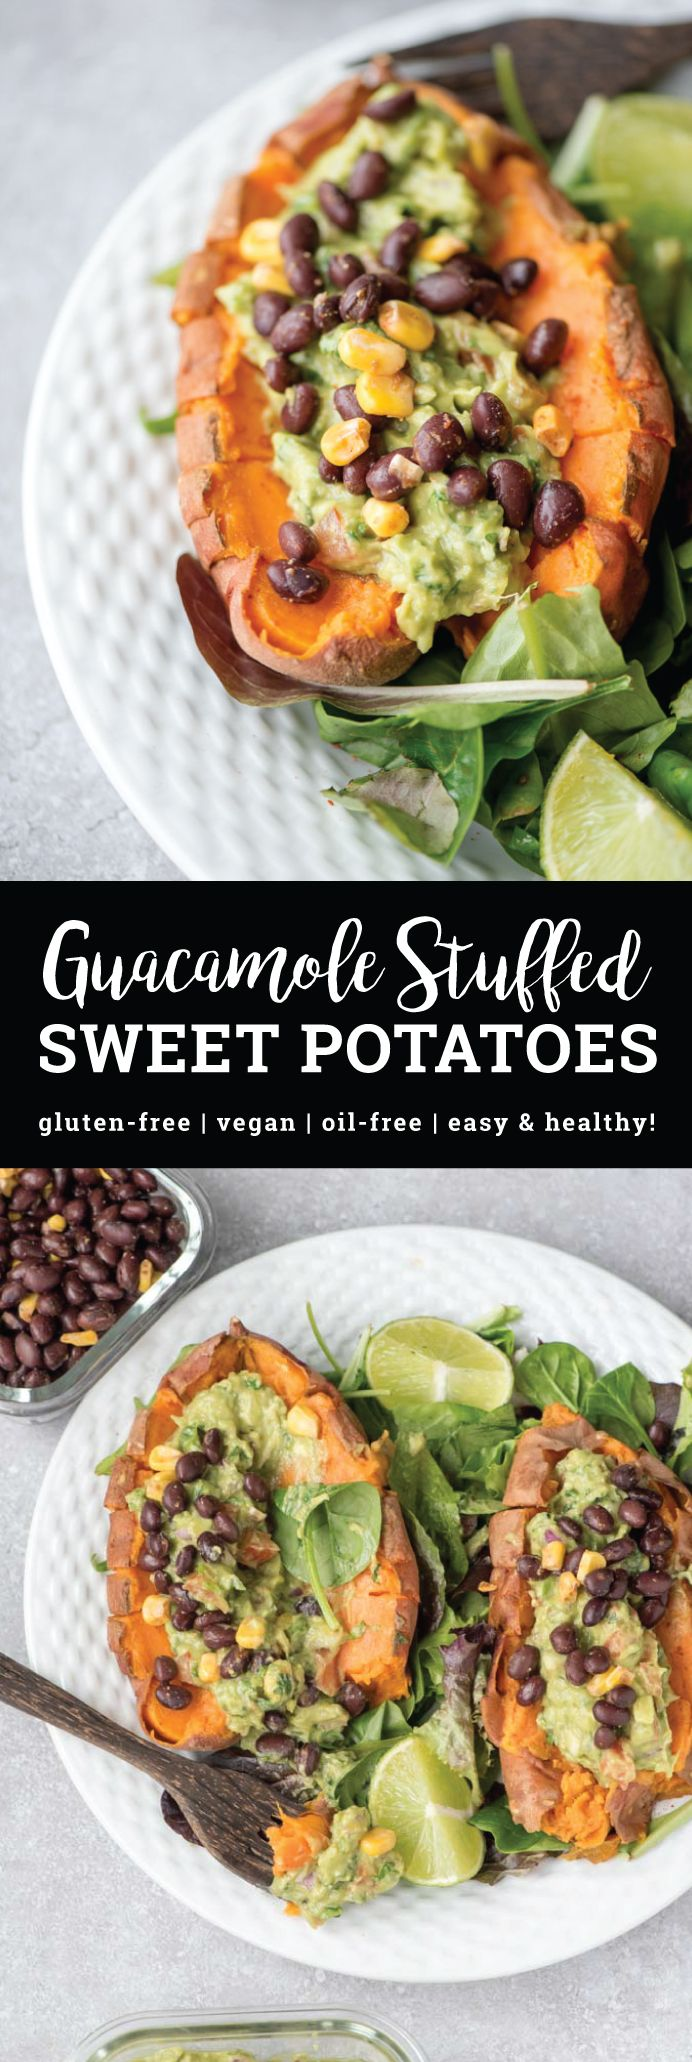 These Guacamole Stuffed Sweet Potatoes with Black Beans are healthy, filling, easy to make and taste amazing. Stuff them full of guacamole and any of your other favourite Mexican toppings such as corn, salsa, lentil taco meat and vegan sour cream. Vegan, gluten-free, oil-free, high fibre.